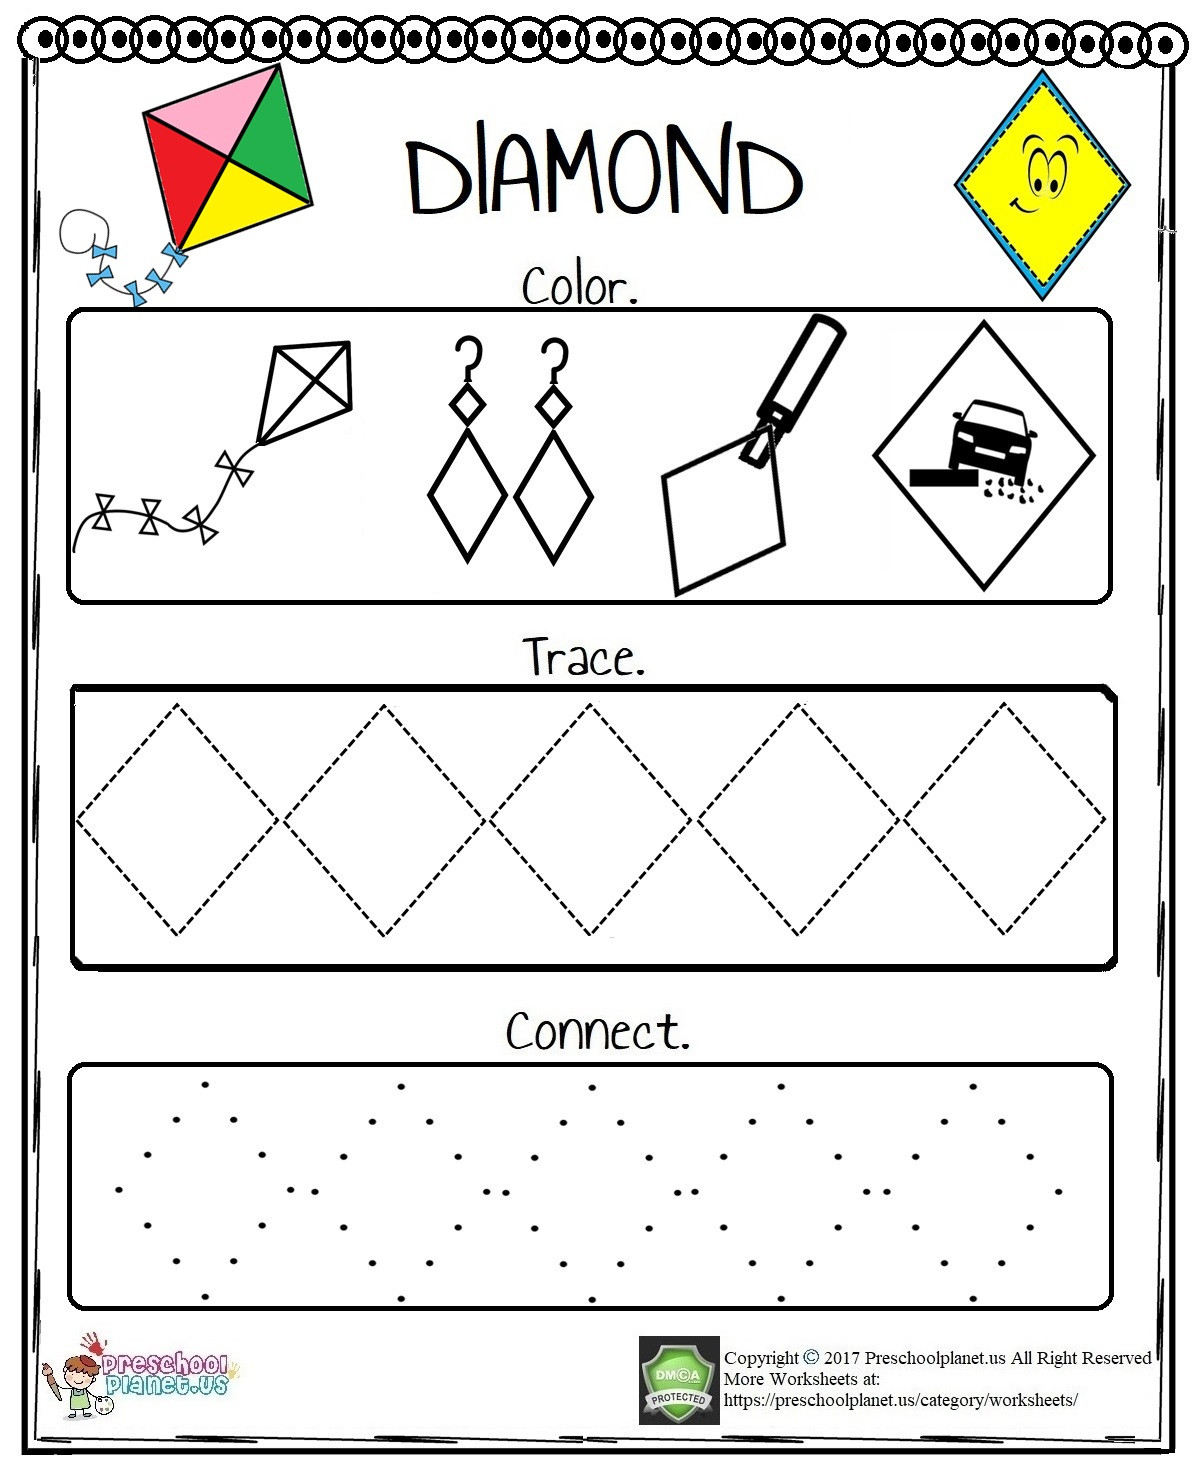 Preschool Diamond Shape Worksheets Shape Woksheet – Preschoolplanet